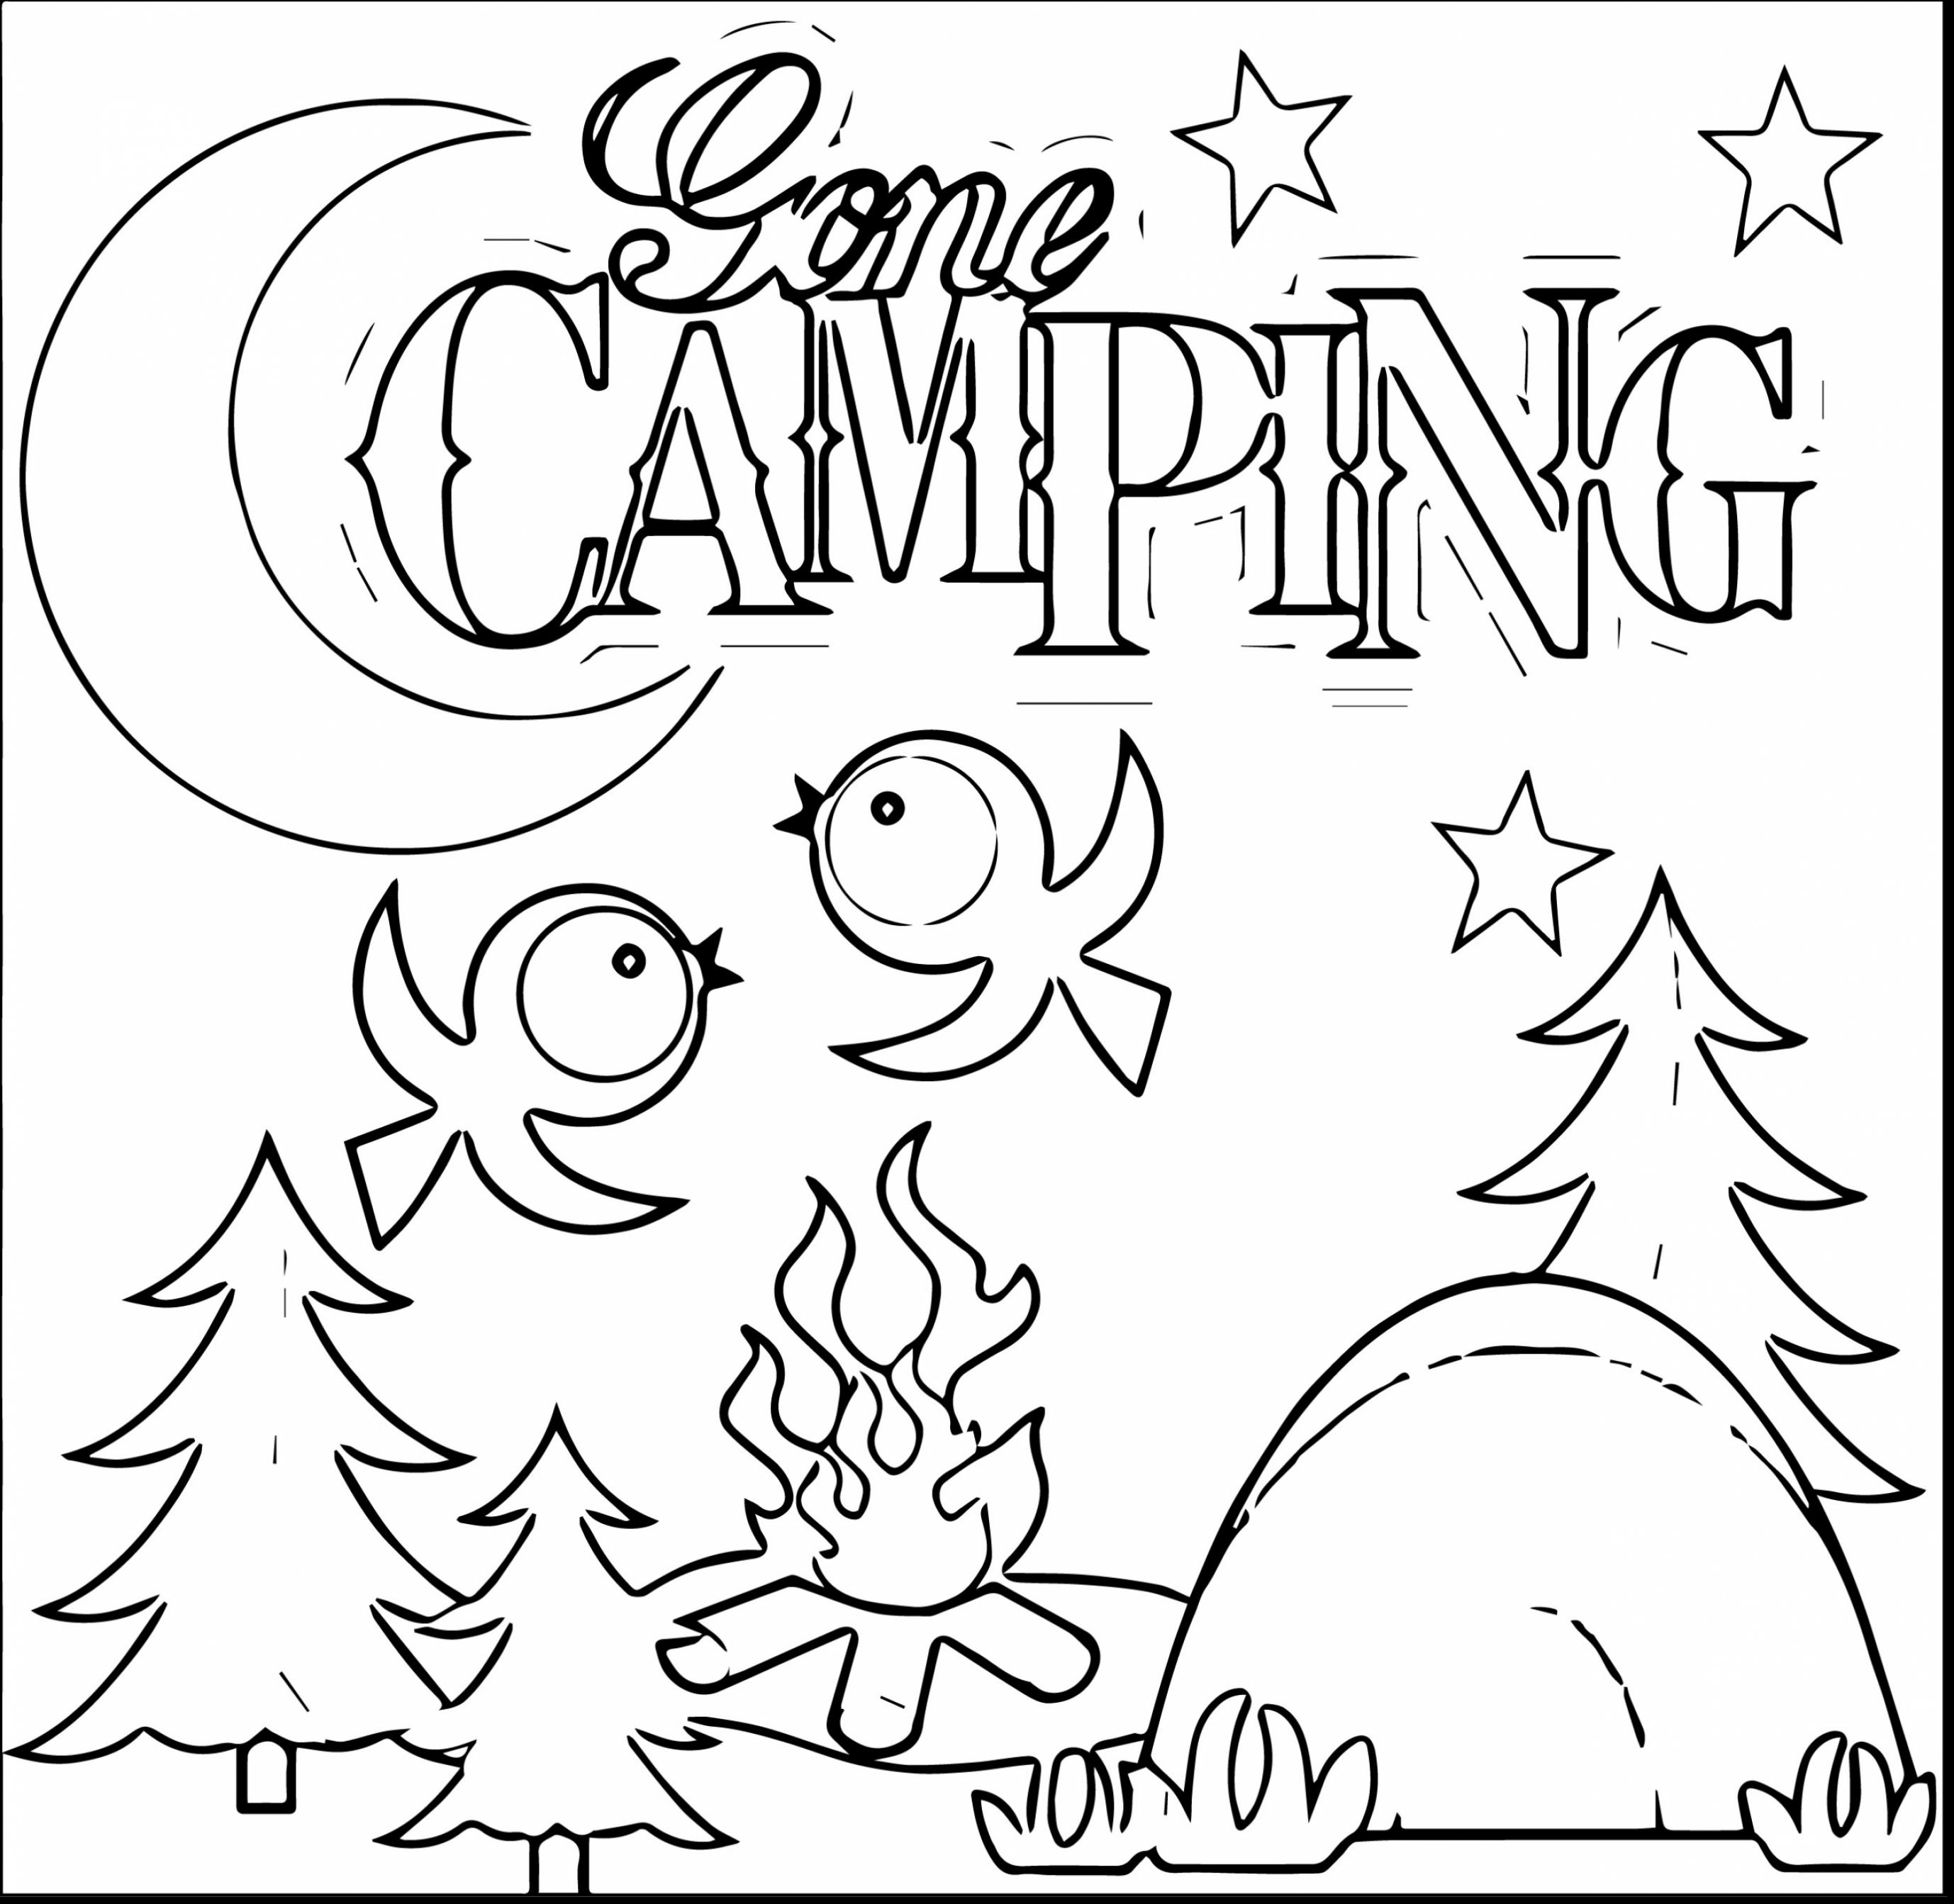 Gingerbread Family Coloring Pages at GetColorings.com